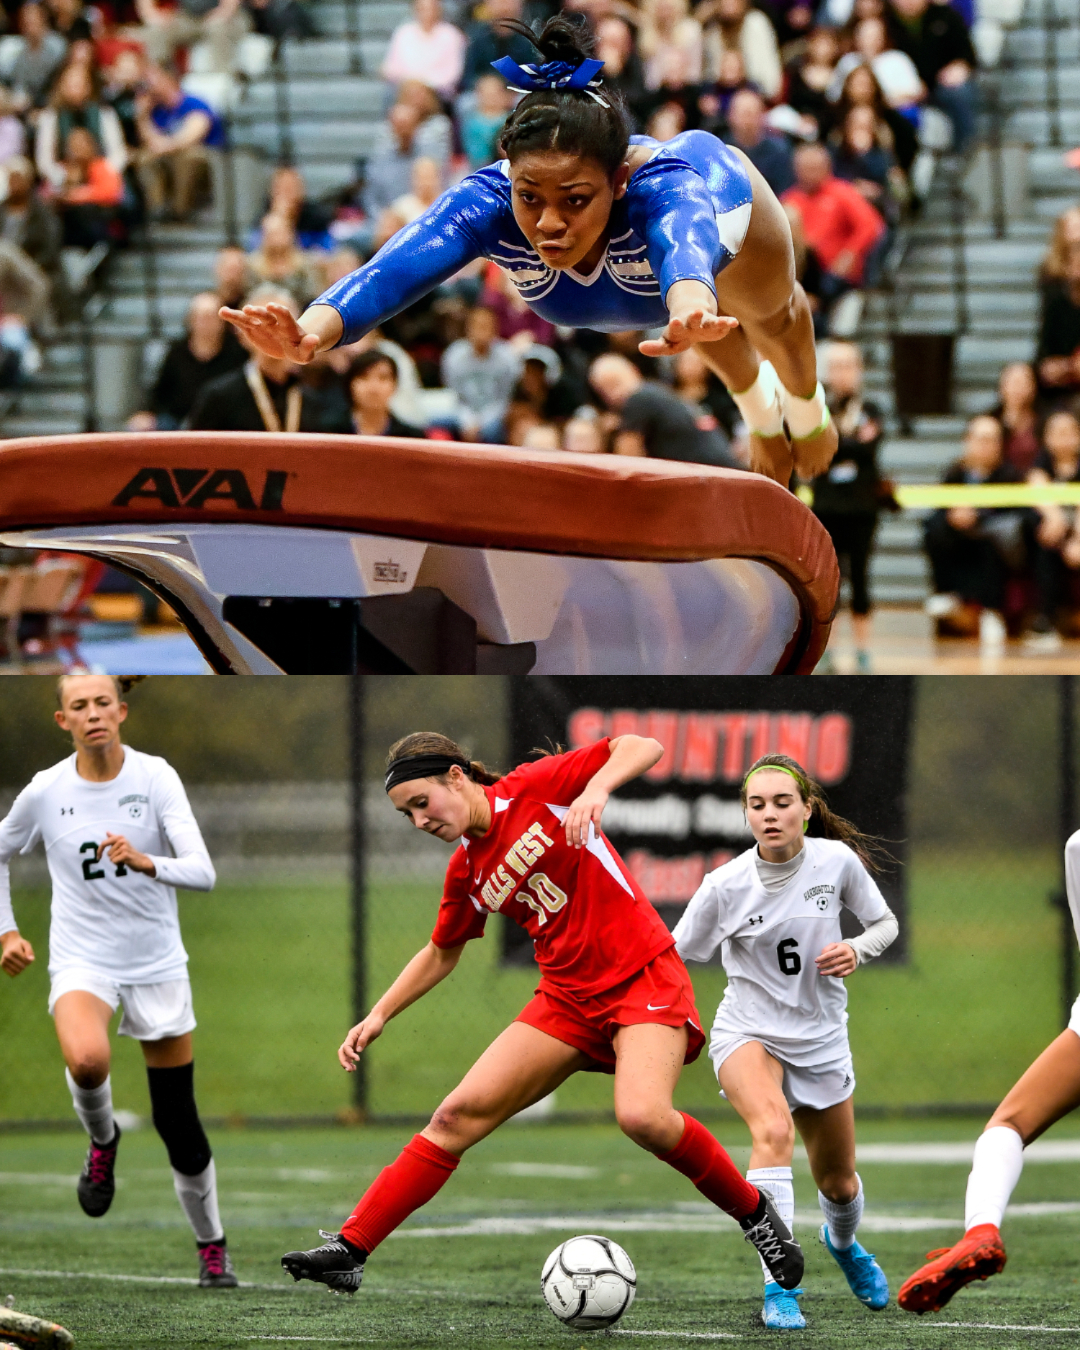 Hills Alumna And Student Named To Newsday's List Of Top 100 Girl Athletes Of The 2010s